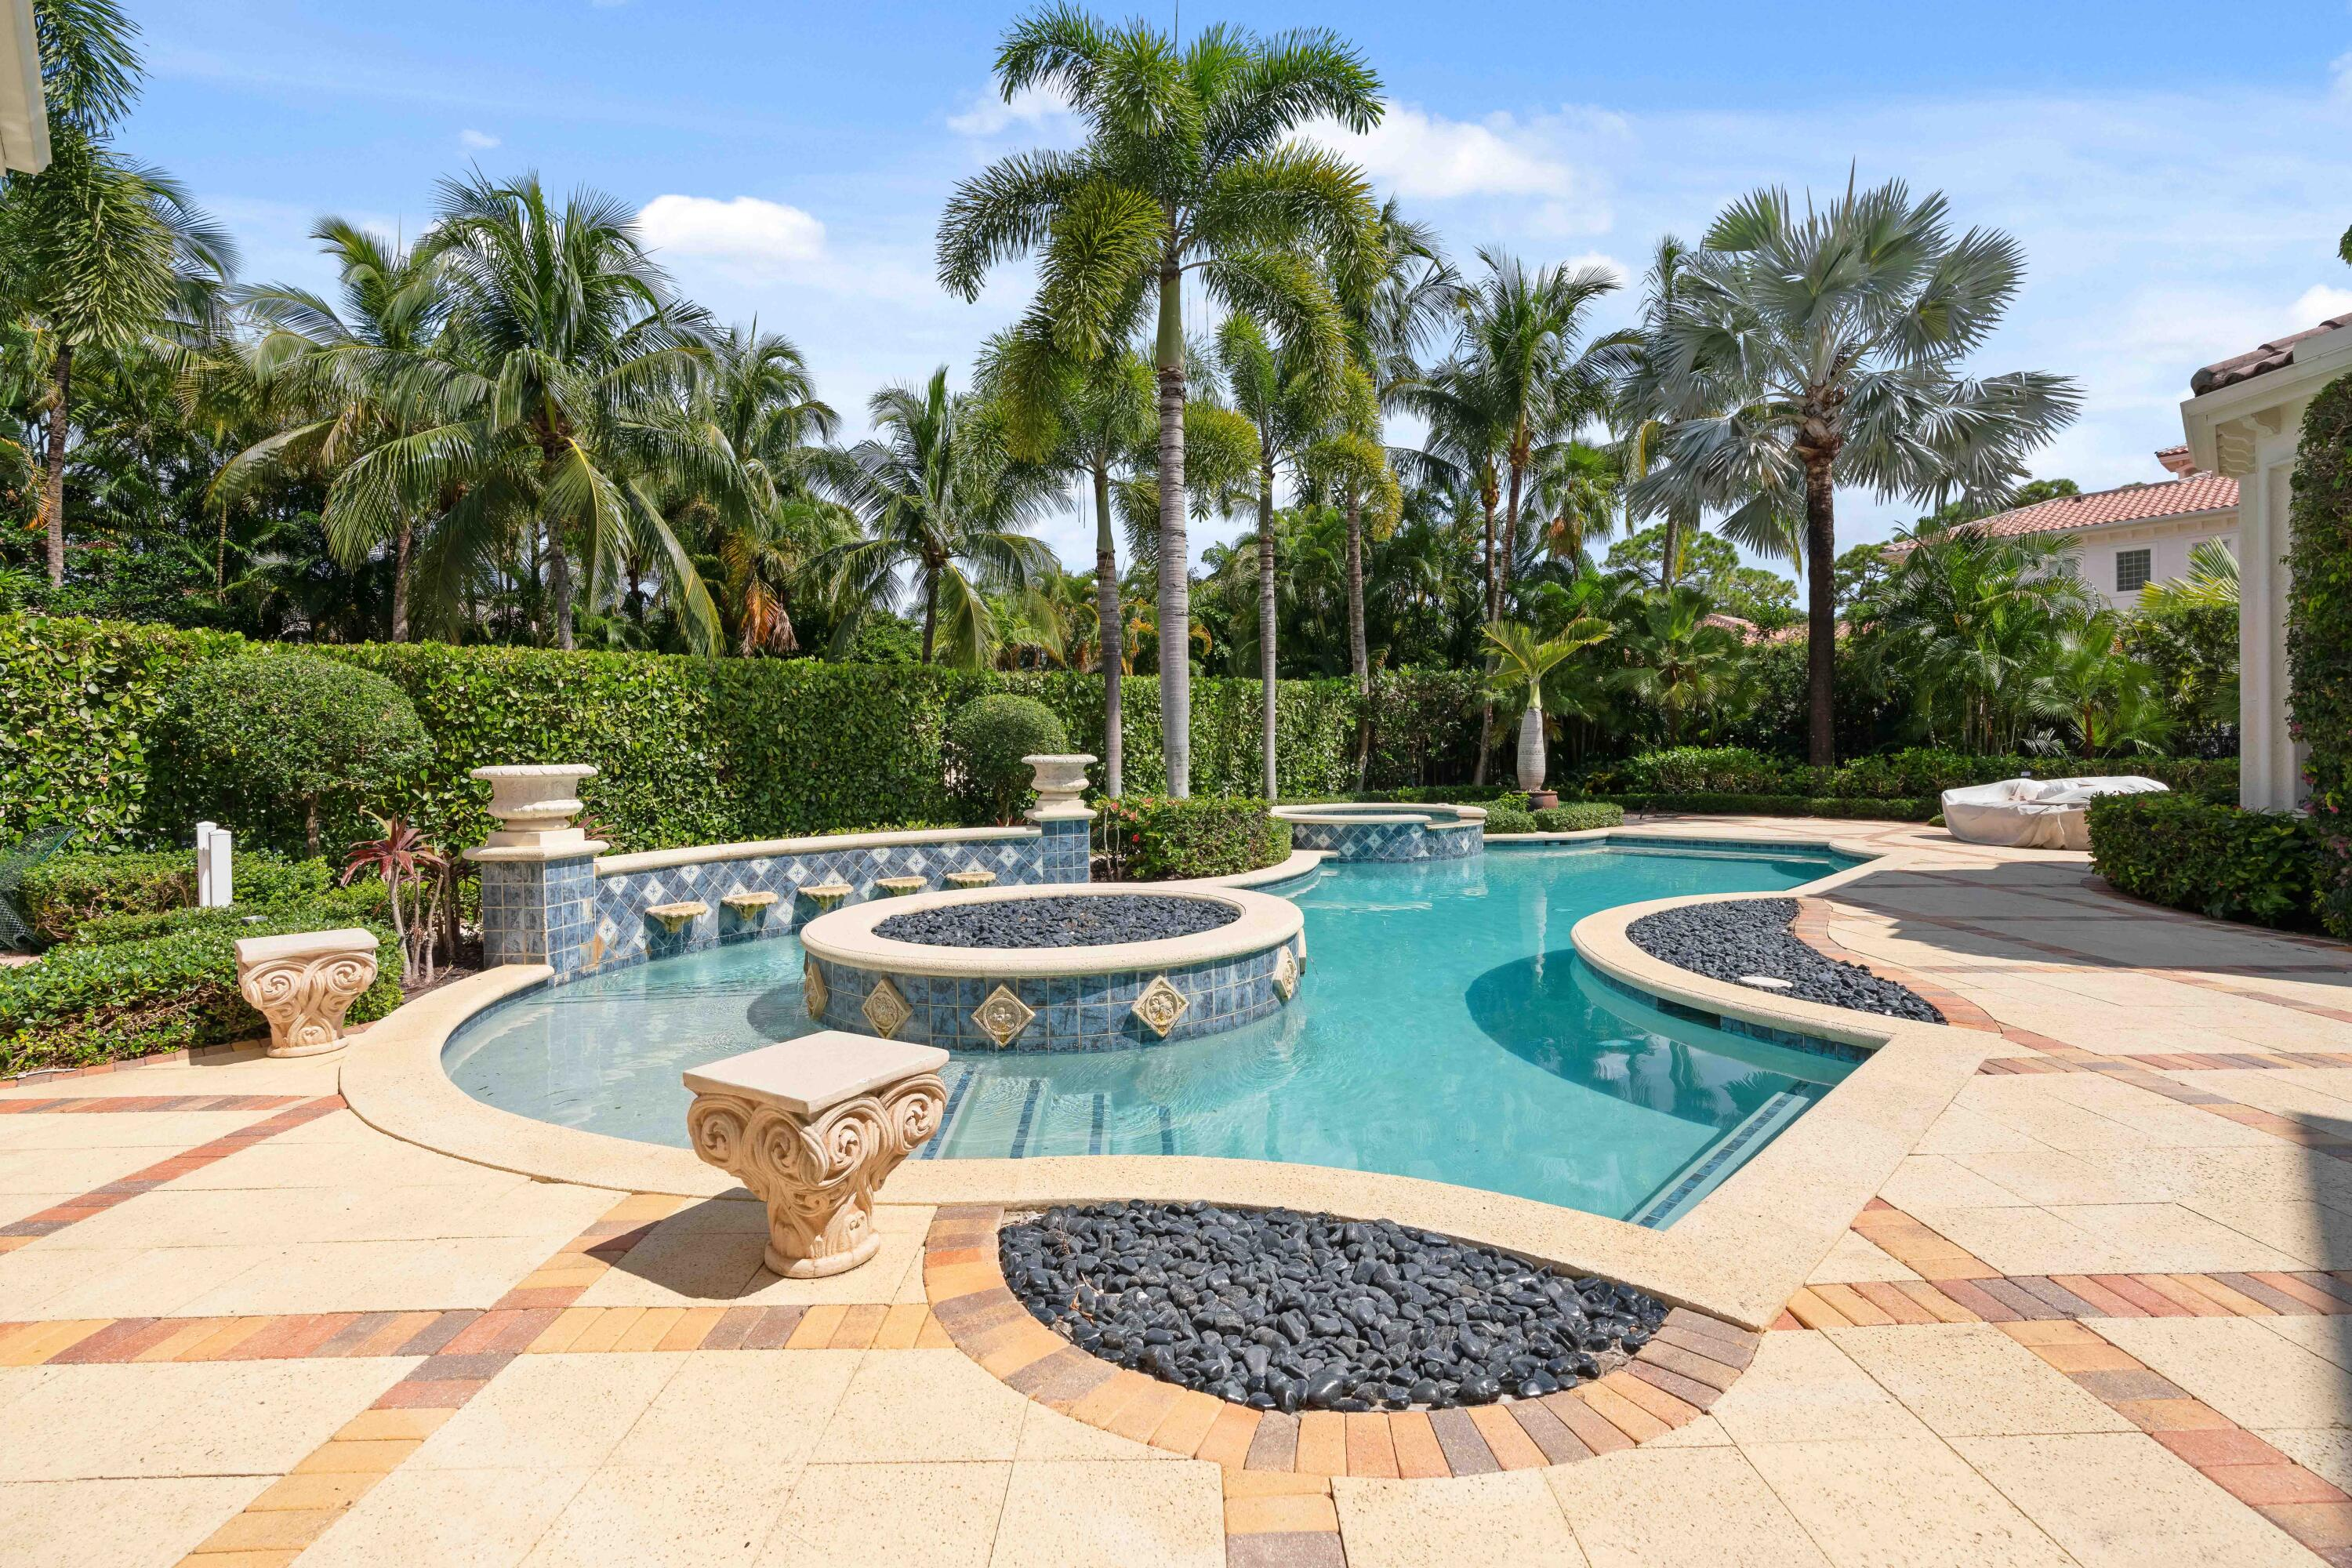 AN OPPORTUNITY TO RENT IN THE ESTEEMED OLD PALM GOLF CLUB THIS SEASON 2021/2022!  THIS 5-7 BEDROOM, 7000 SF HOME WILL BE AVAILABLE NOVEMBER 1 2021 AND IS AVAILABLE AS AN UNFURNISHED SEASONAL OR UNSEASONAL RENTAL. DO NOT GET STUCK UP IN THE COLD AGAIN THIS SEASON. THIS IS YOUR PLACE IN PARADISE TO TEST THE FLORIDA WATERS.